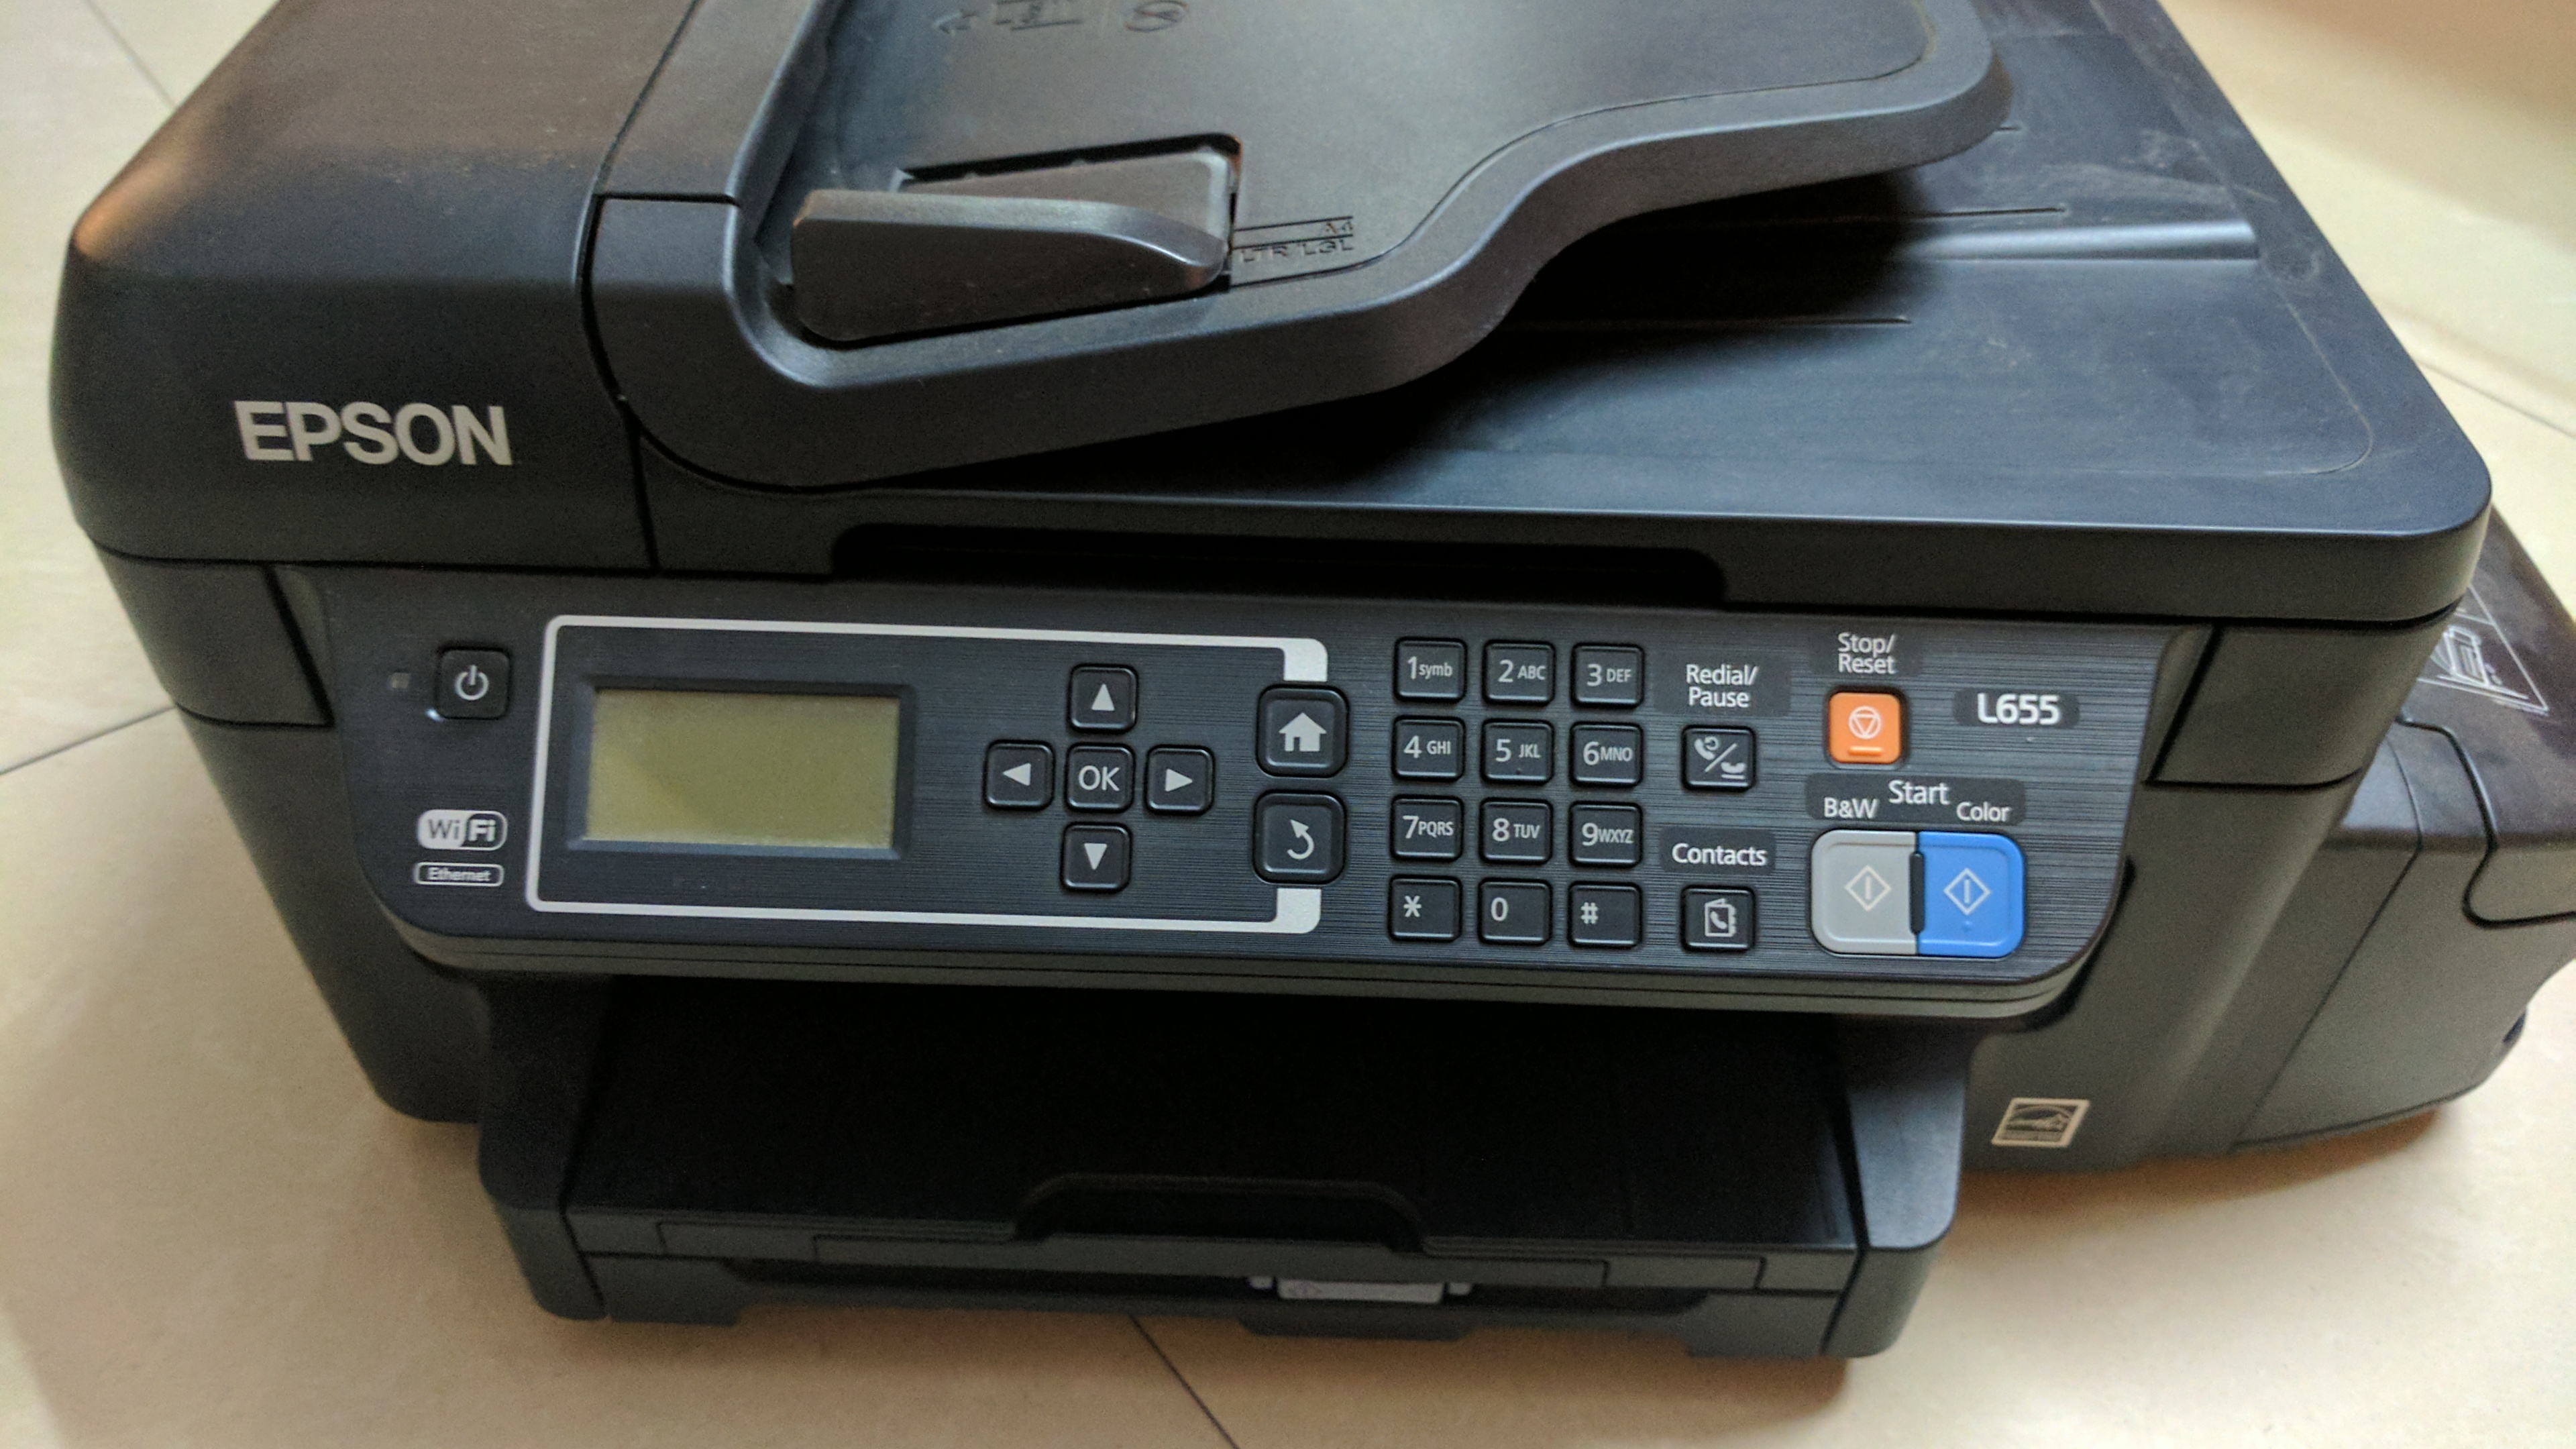 Epson L655 printer Review: An all in one printer that will